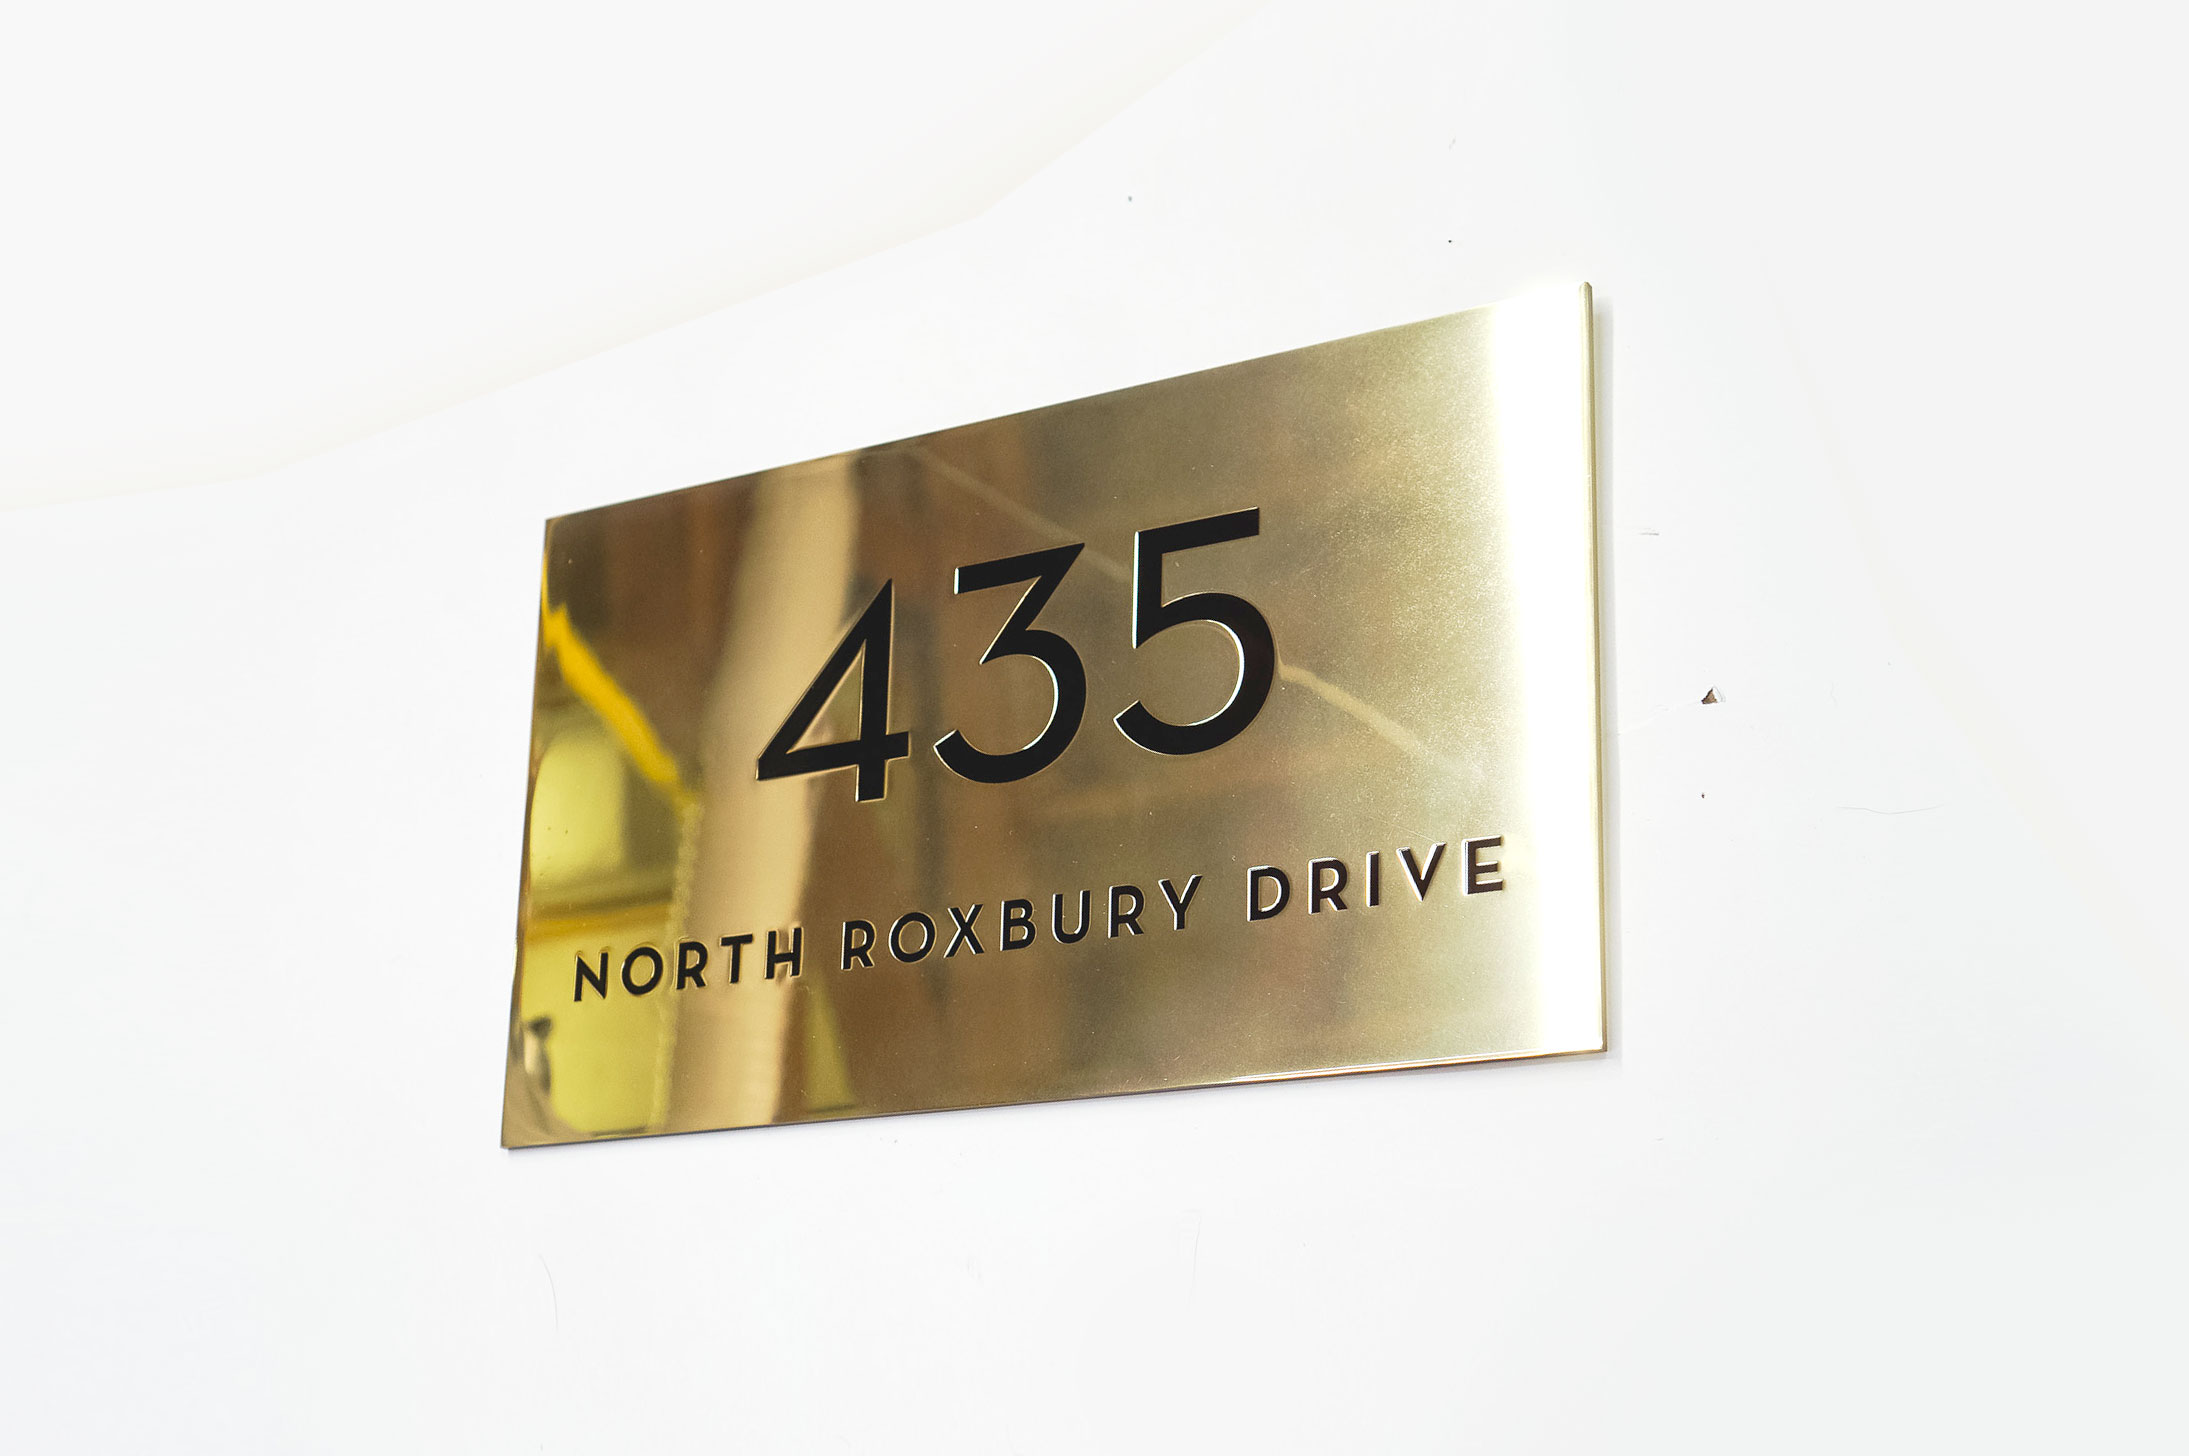 Classic style, solid brass exterior address sign for Mickey's Fine Pharmacy, a Beverly Hills landmark.